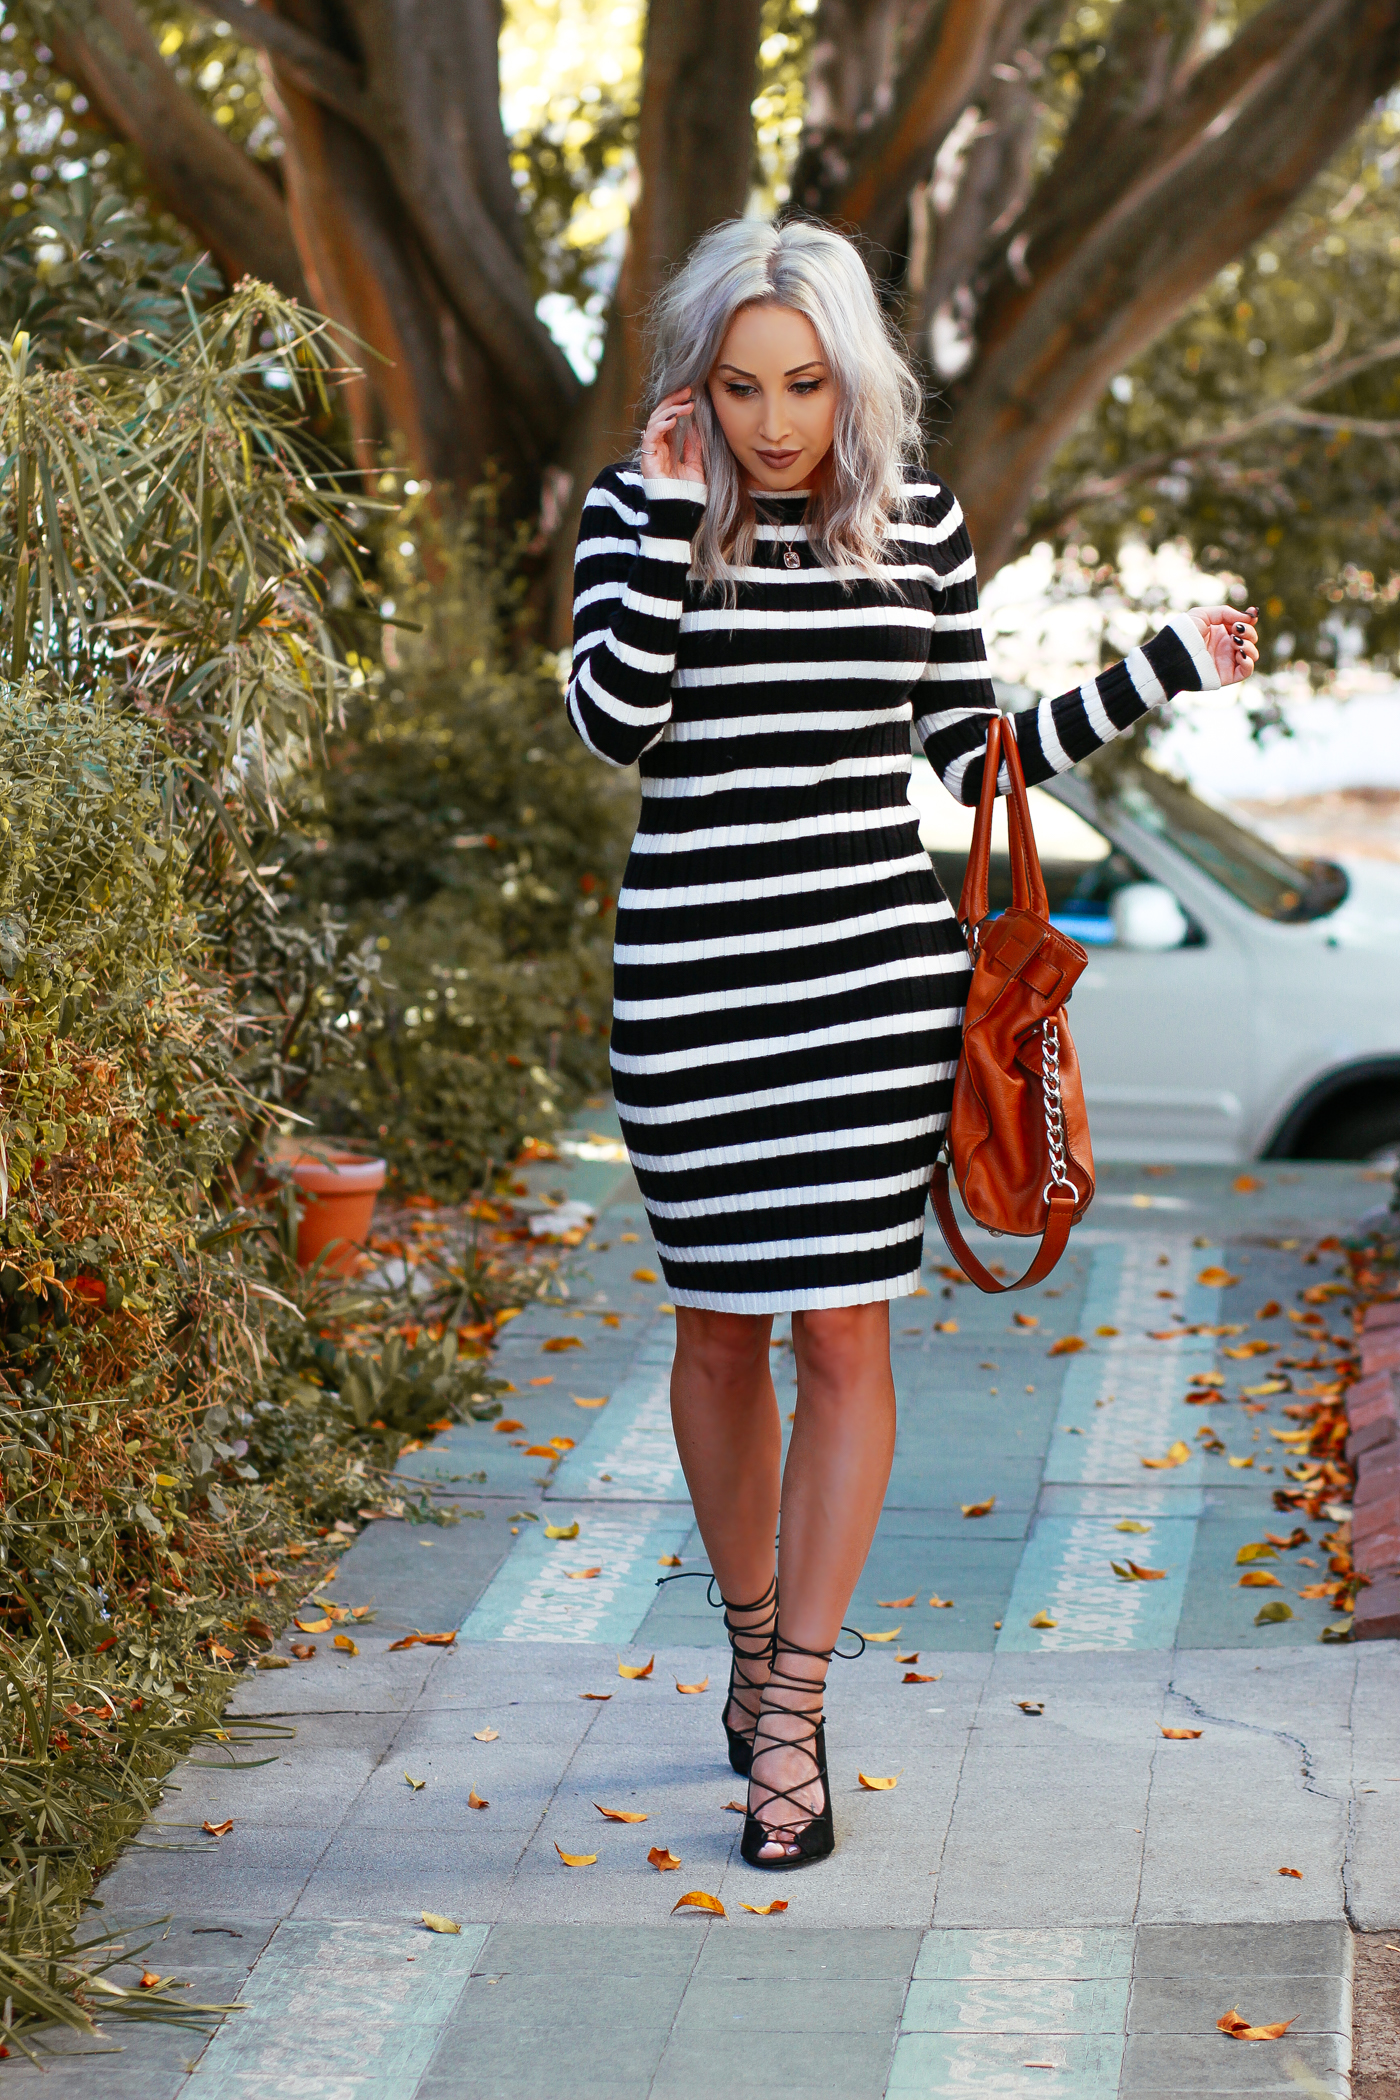 Blondie in the City   Cozy Striped Sweater Dress   @nakdfashion lace up heels   Fall Fashion Street Style